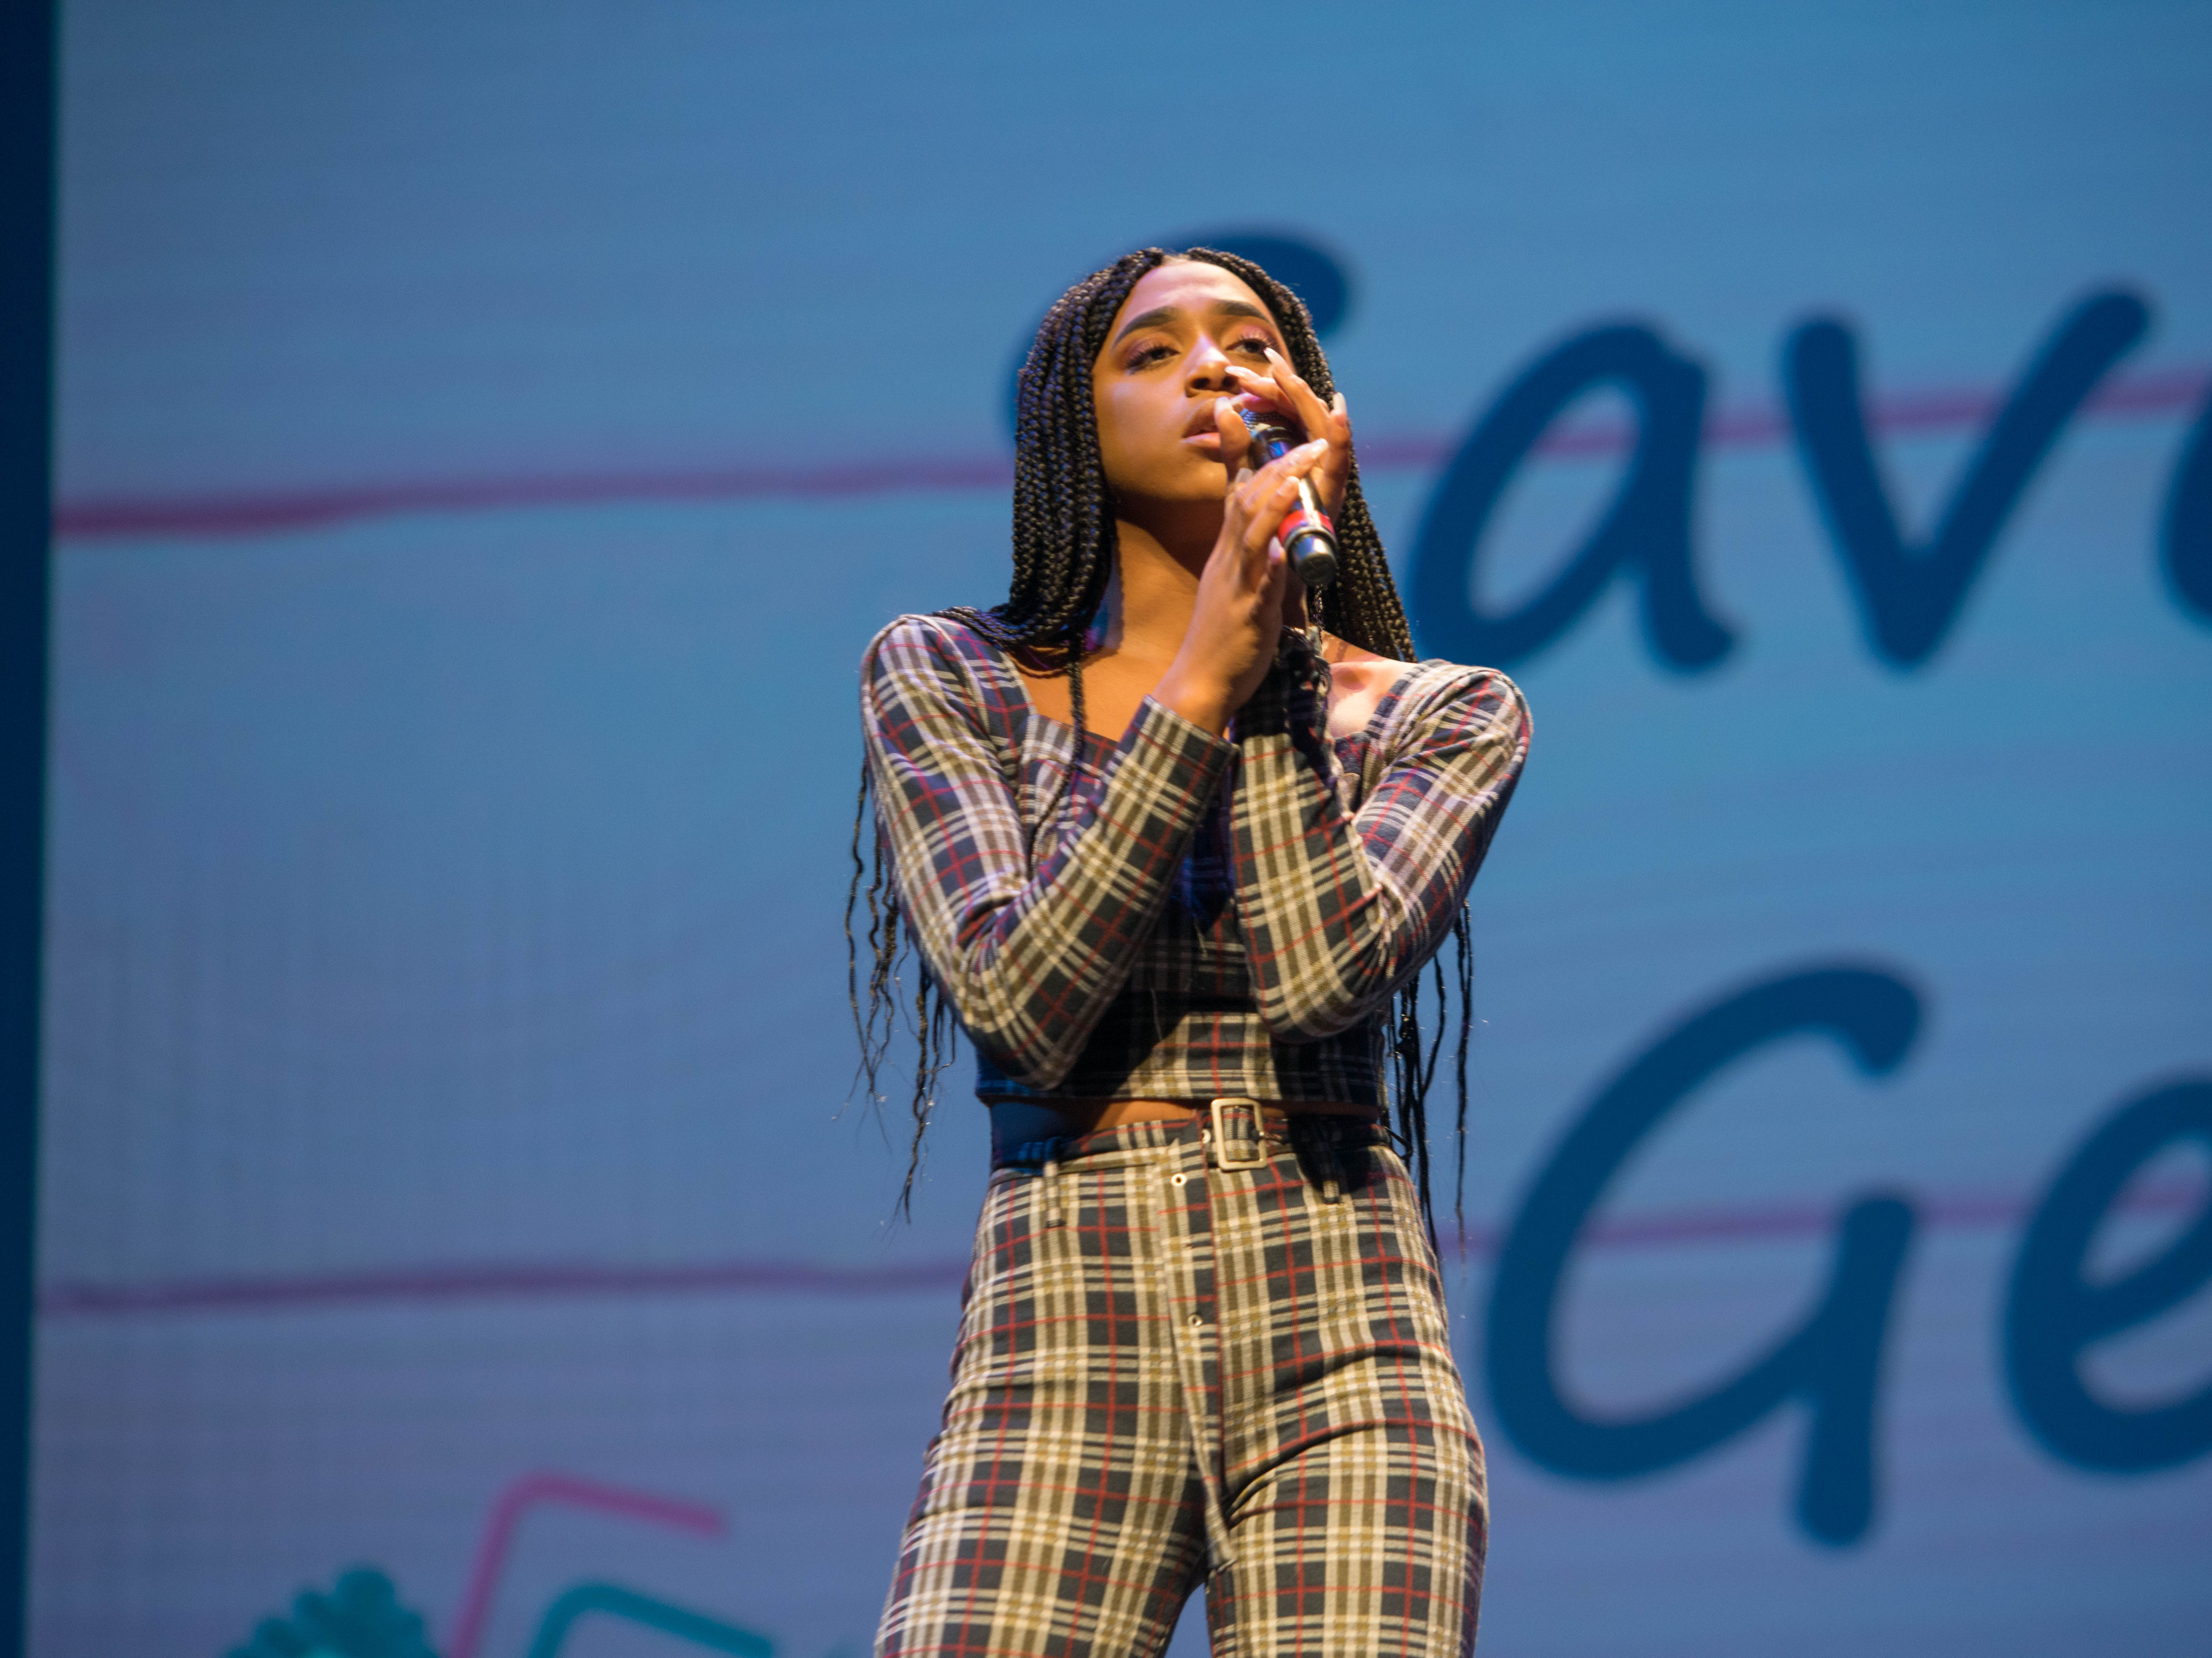 Savannah George. The 2019 Englewood Idol was held at bergenPAC theater. The singing competition is open to any high school student who currently lives or goes to school in Englewood, NJ. This years winner was Genesis Capellan. 01/11/2019